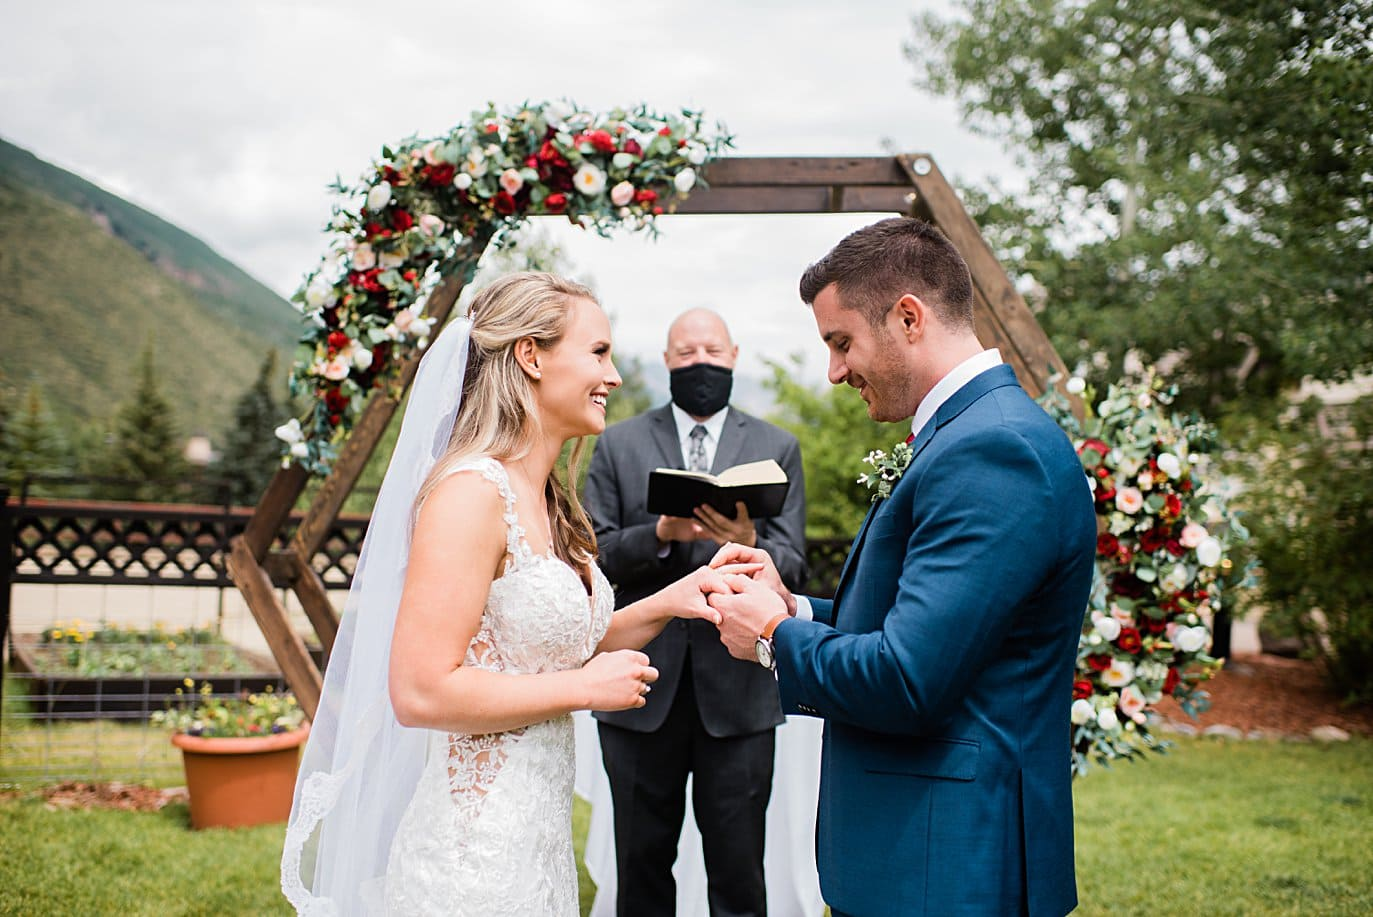 bride and groom exchange rings in front of hexagon arch at Larkspur Vail Wedding by Lyons Wedding photographer Jennie Crate